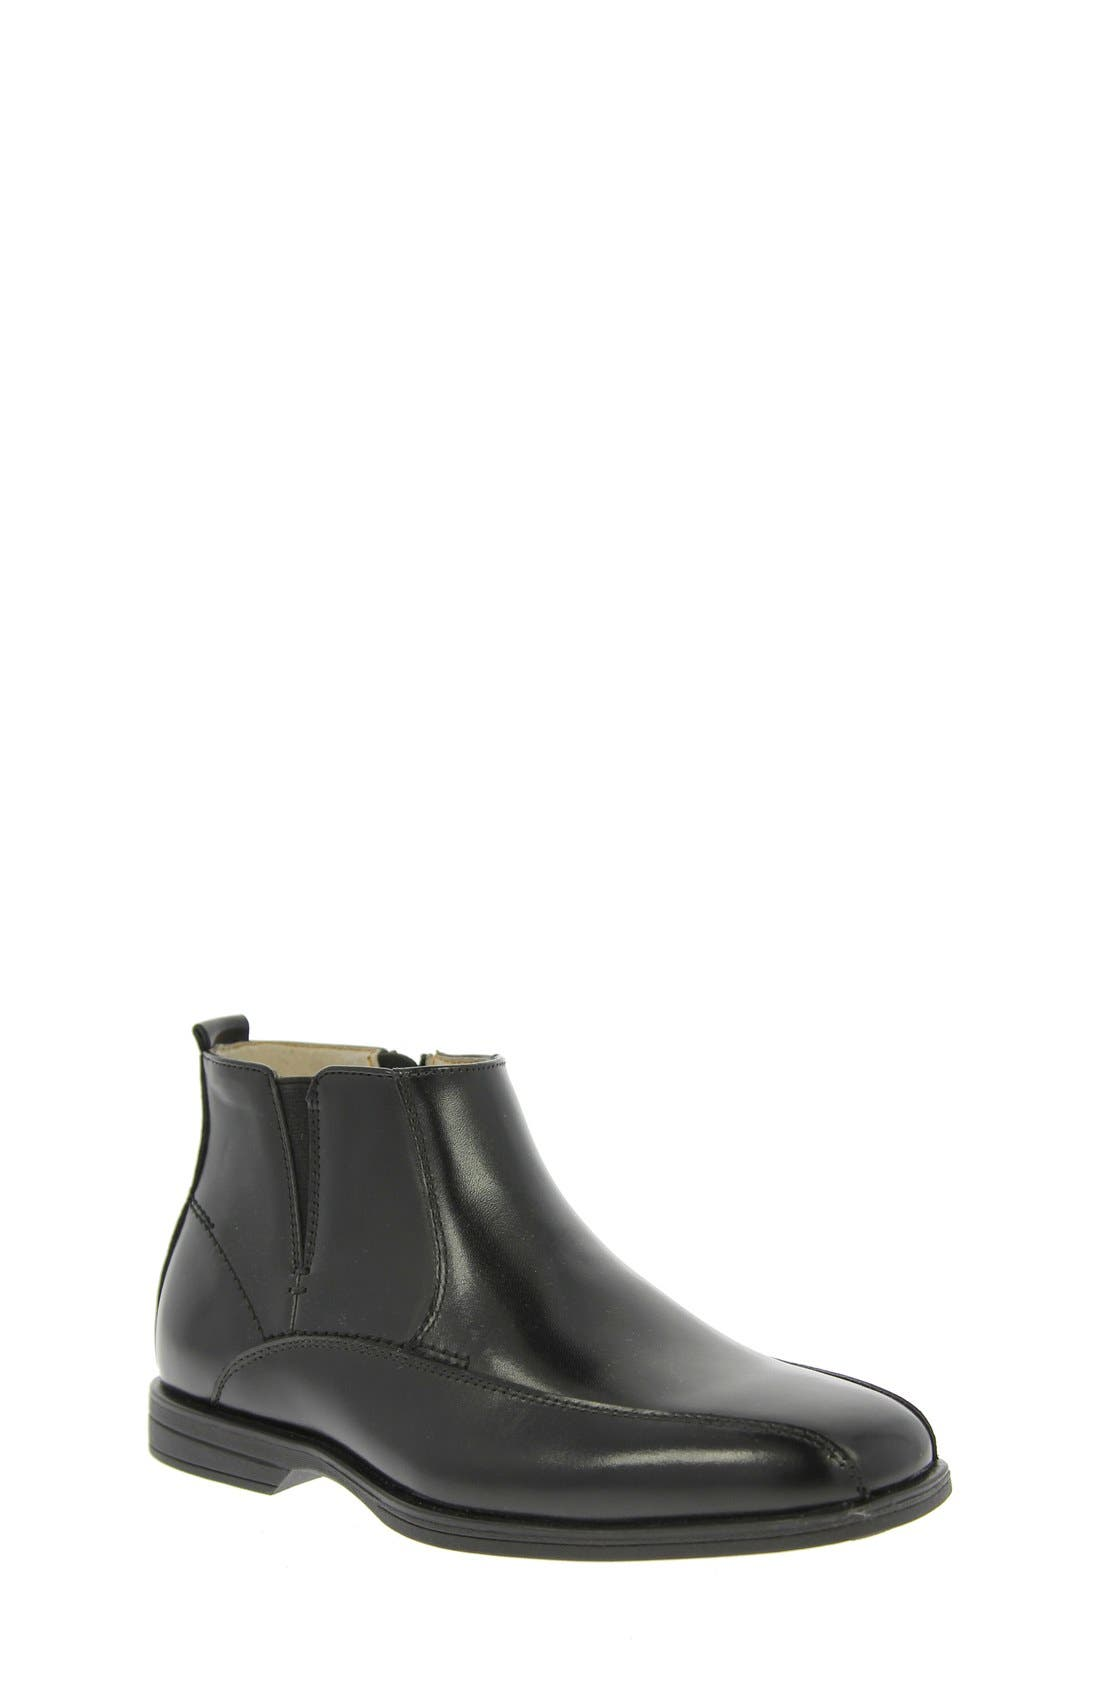 Reveal Chelsea Boot,                             Main thumbnail 1, color,                             BLACK